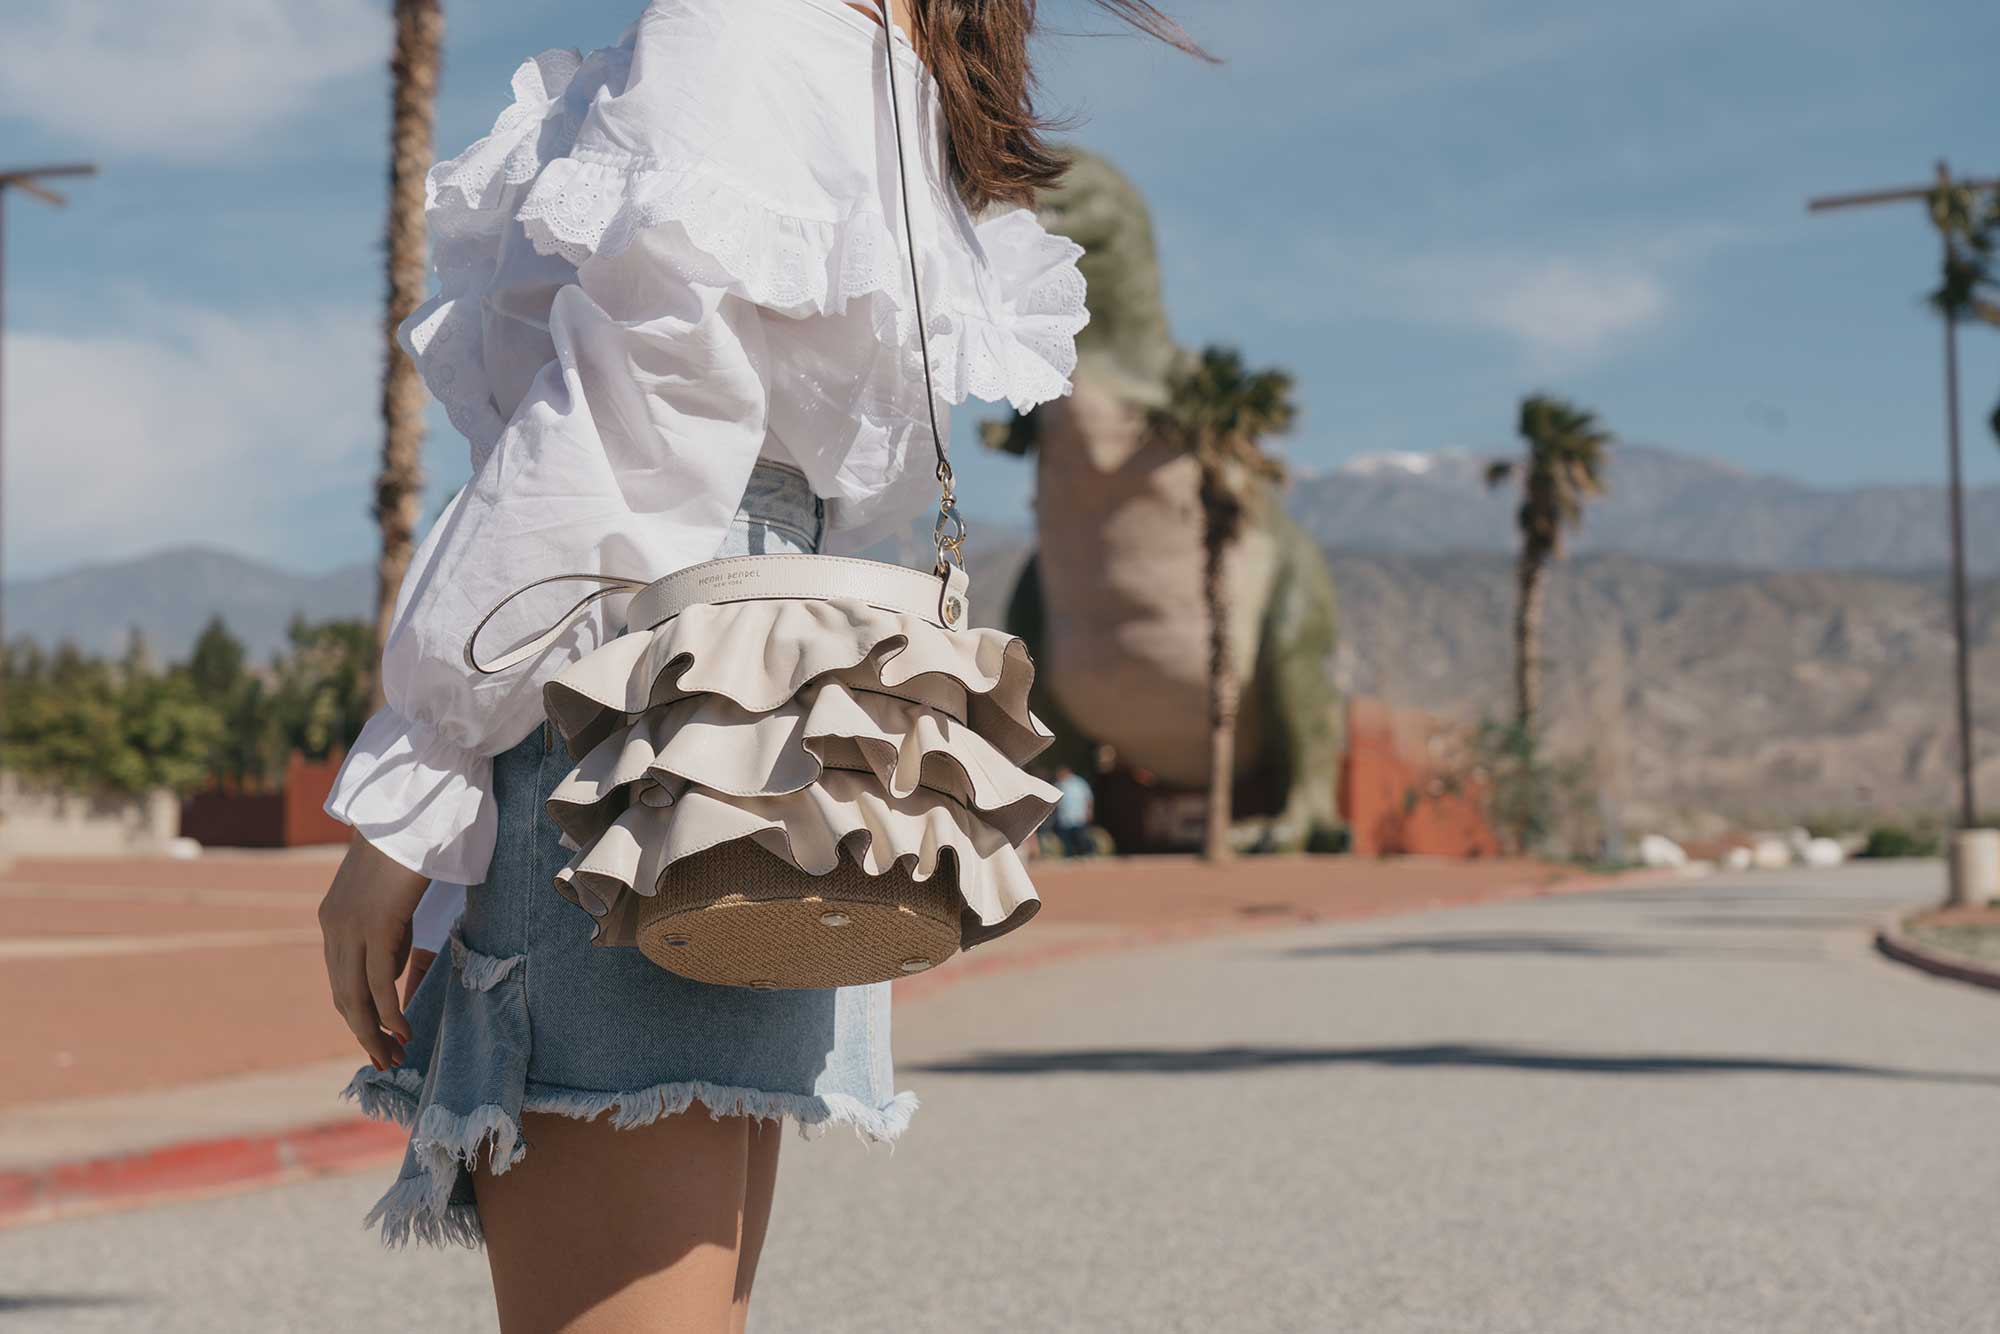 Festival-outfit-off-the-shoulder-ruffle-blouse-ruffle-denim-skirt-cabazon-dinosaurs2.jpg